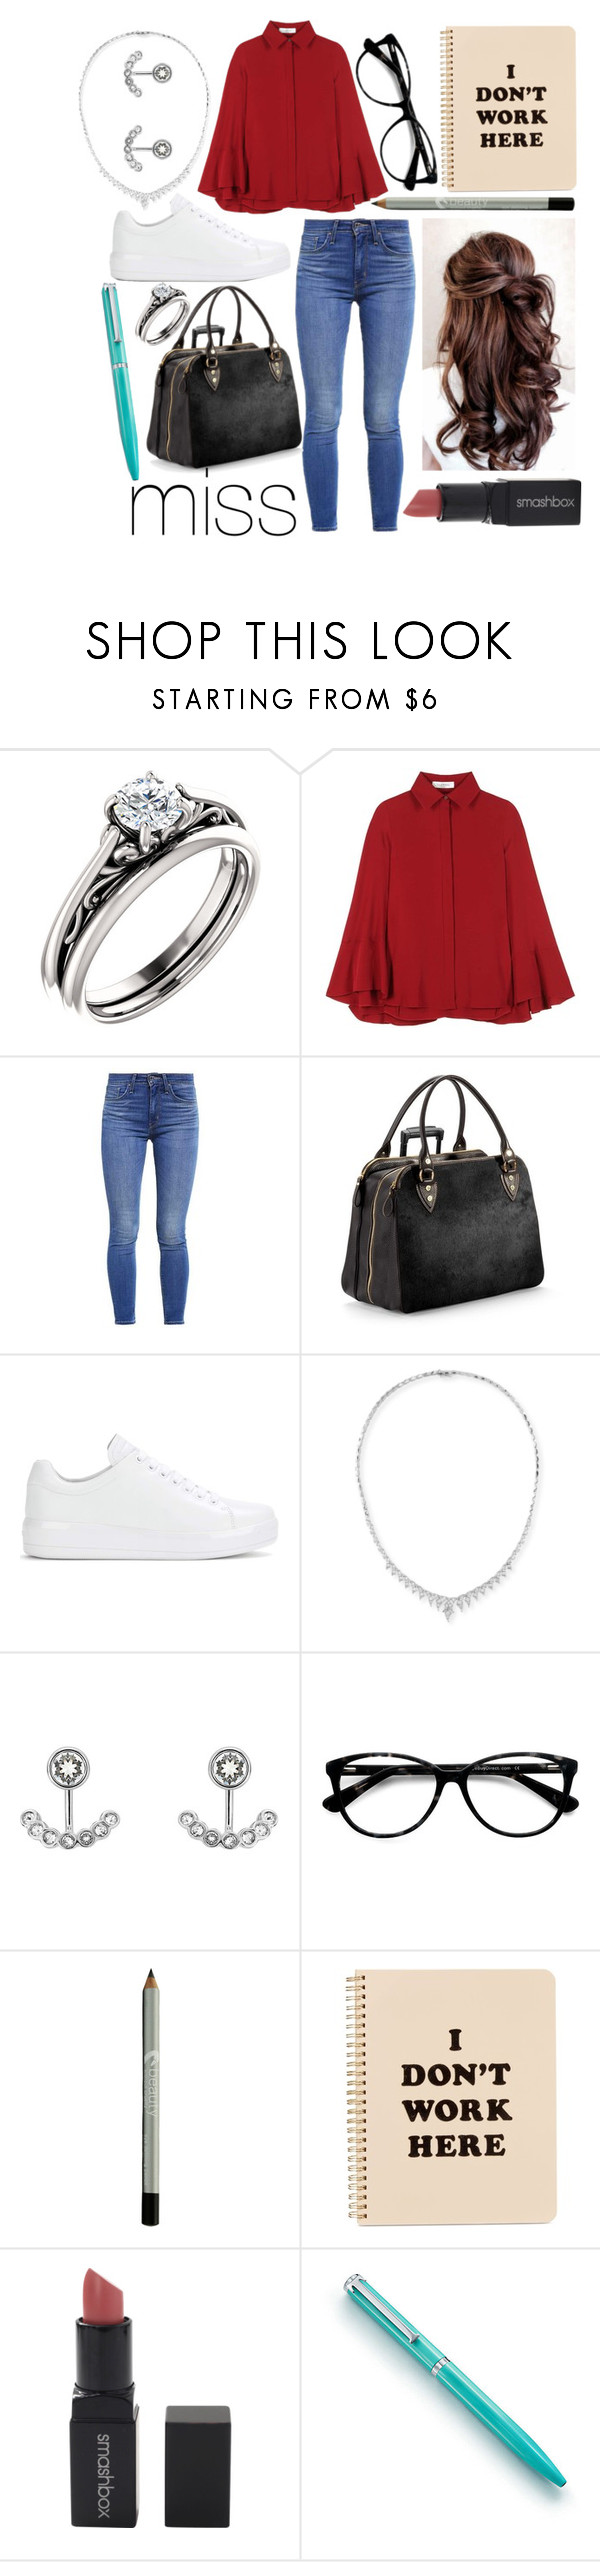 """""""Miss"""" by leonorgomes on Polyvore featuring Valentino, Levi's, Aspinal of London, Prada, Stephen Webster, Ted Baker, Ace, ban.do, Smashbox and Tiffany & Co."""